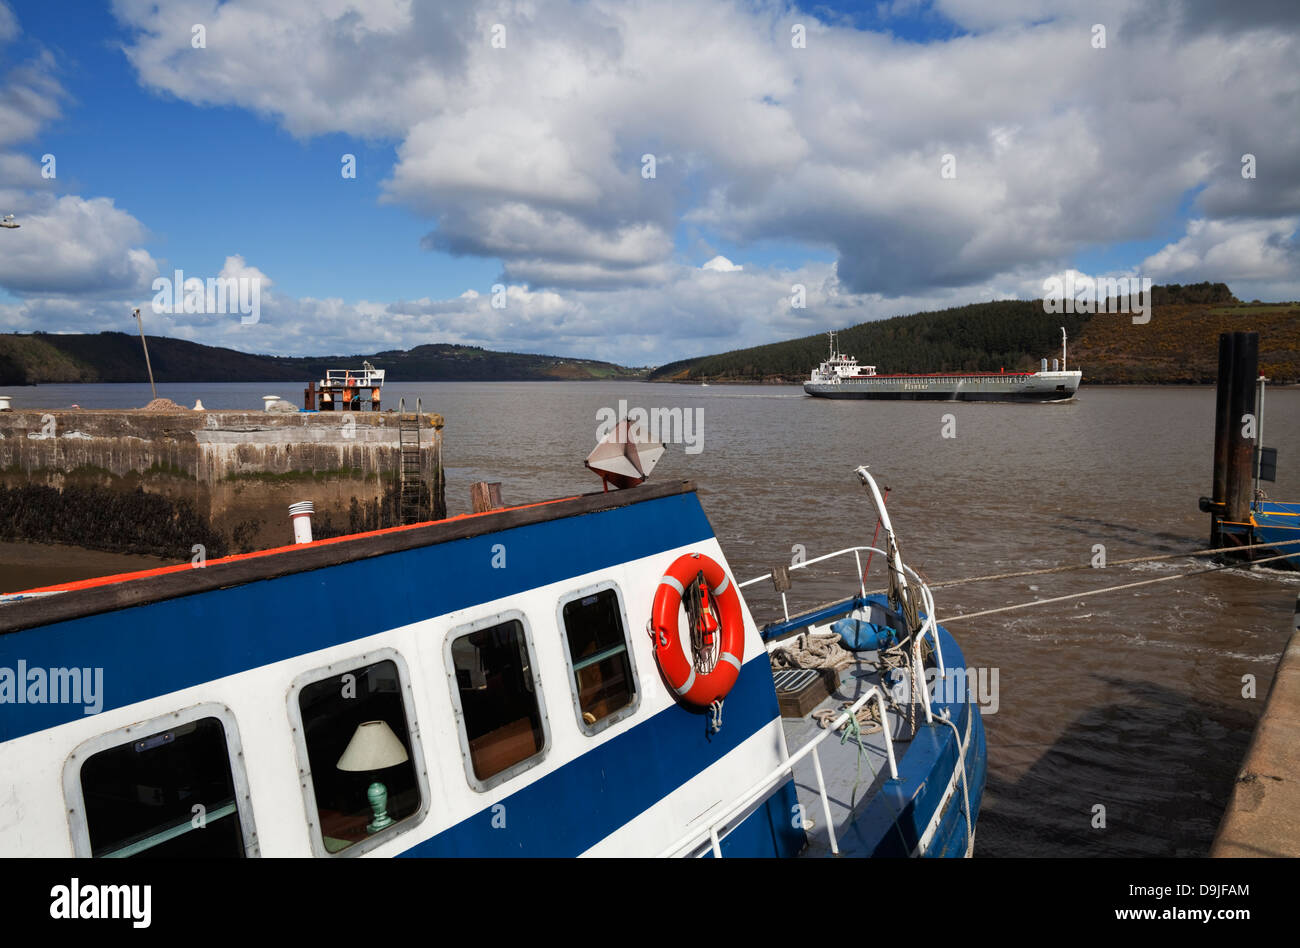 'Flinterbaltica' The Harbour and Leisure Boat , Passage East, County Waterford, Ireland - Stock Image